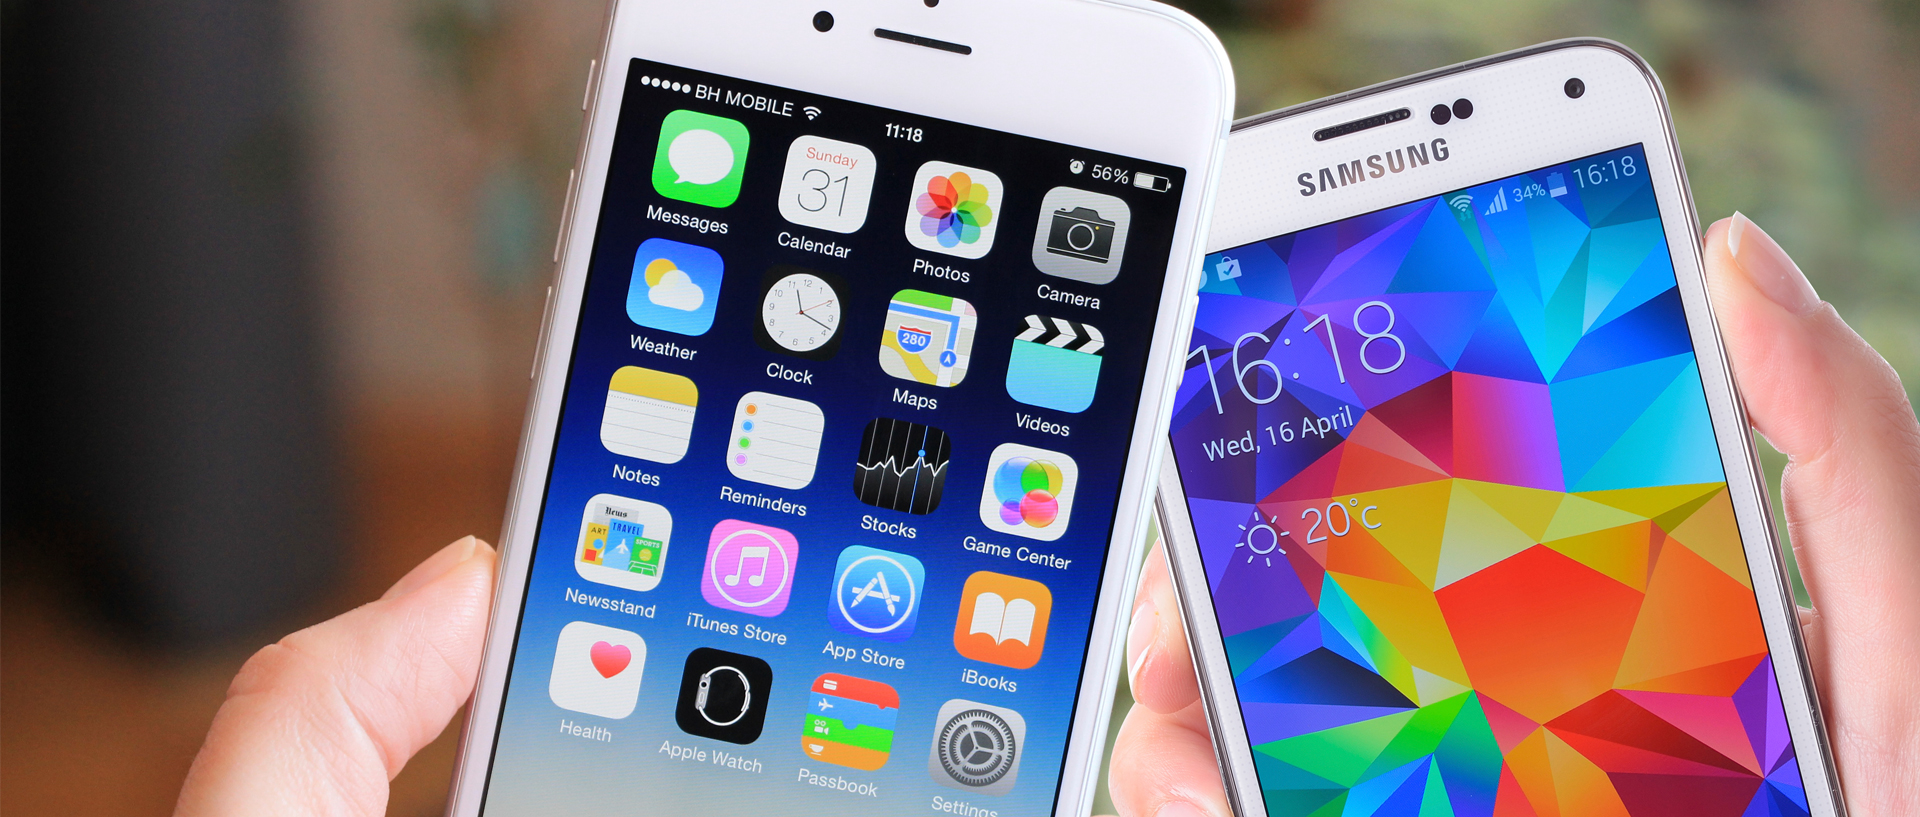 Android or iPhone: What Kind of Person Are You? Consumer Reports #1563B6